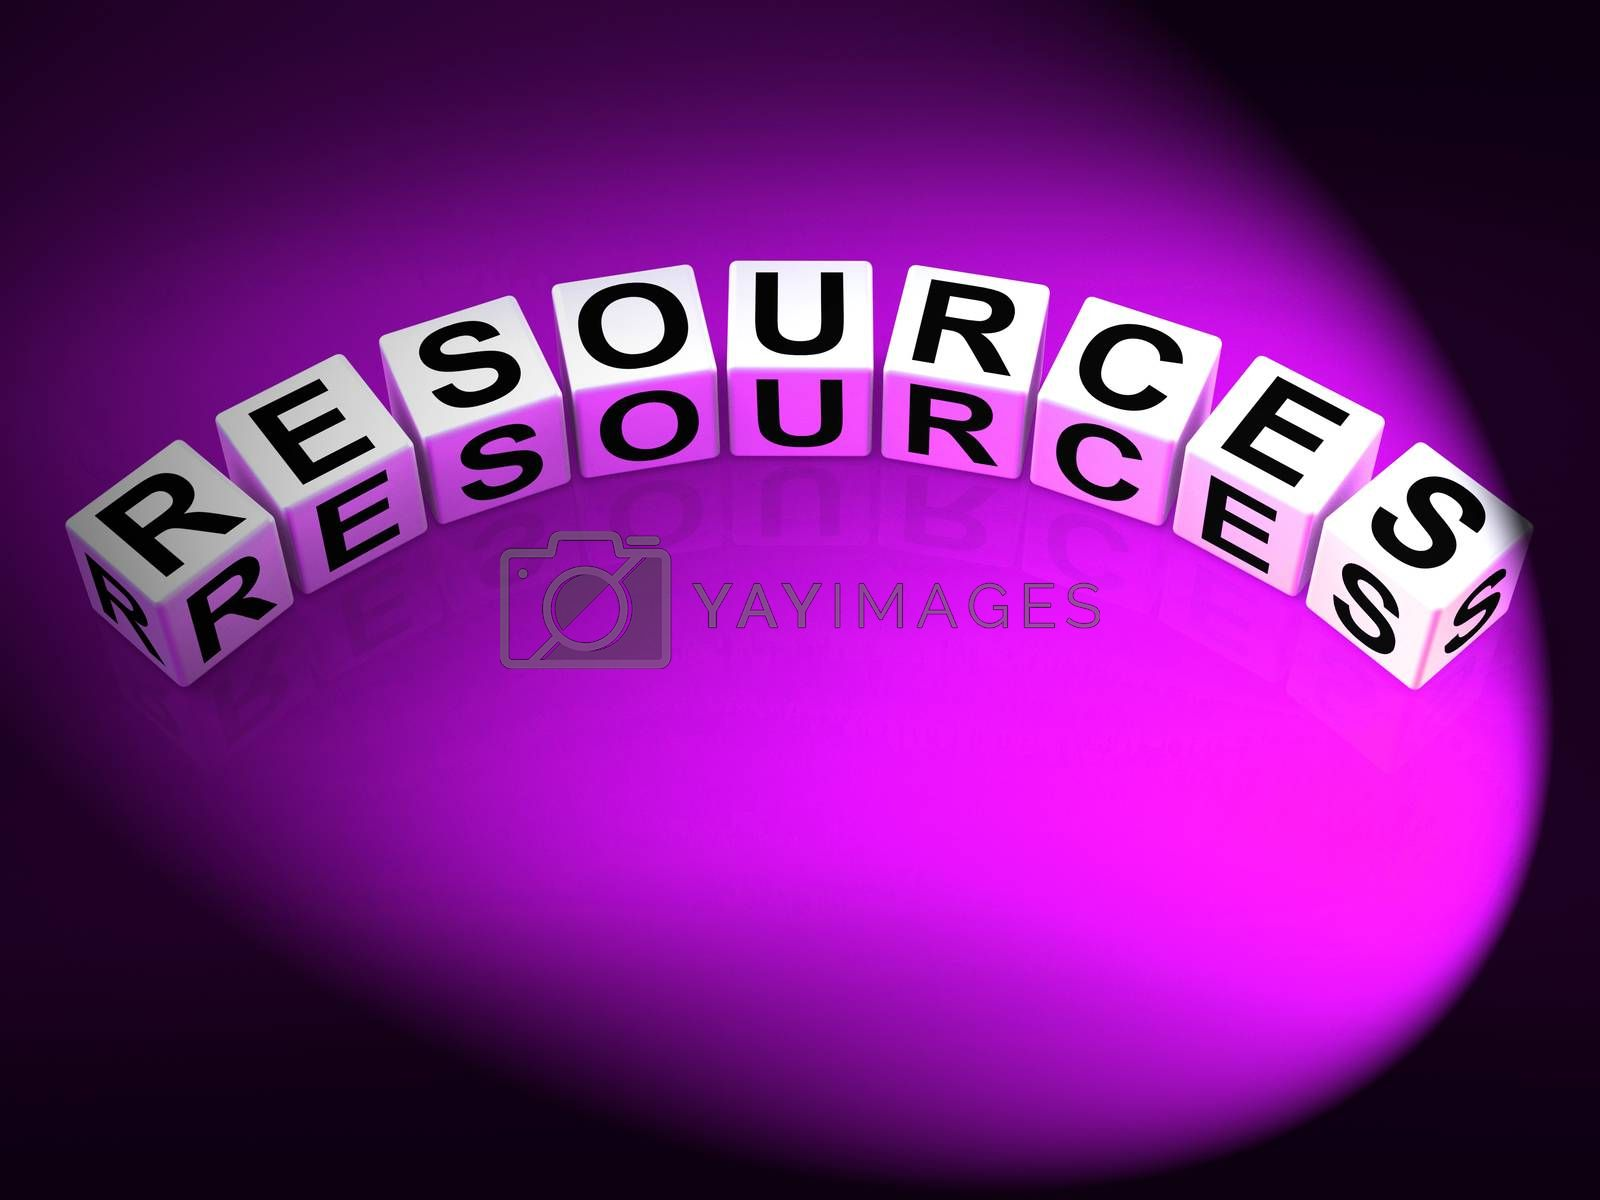 Resources Dice Mean Collateral Assets and Savings by stuartmiles